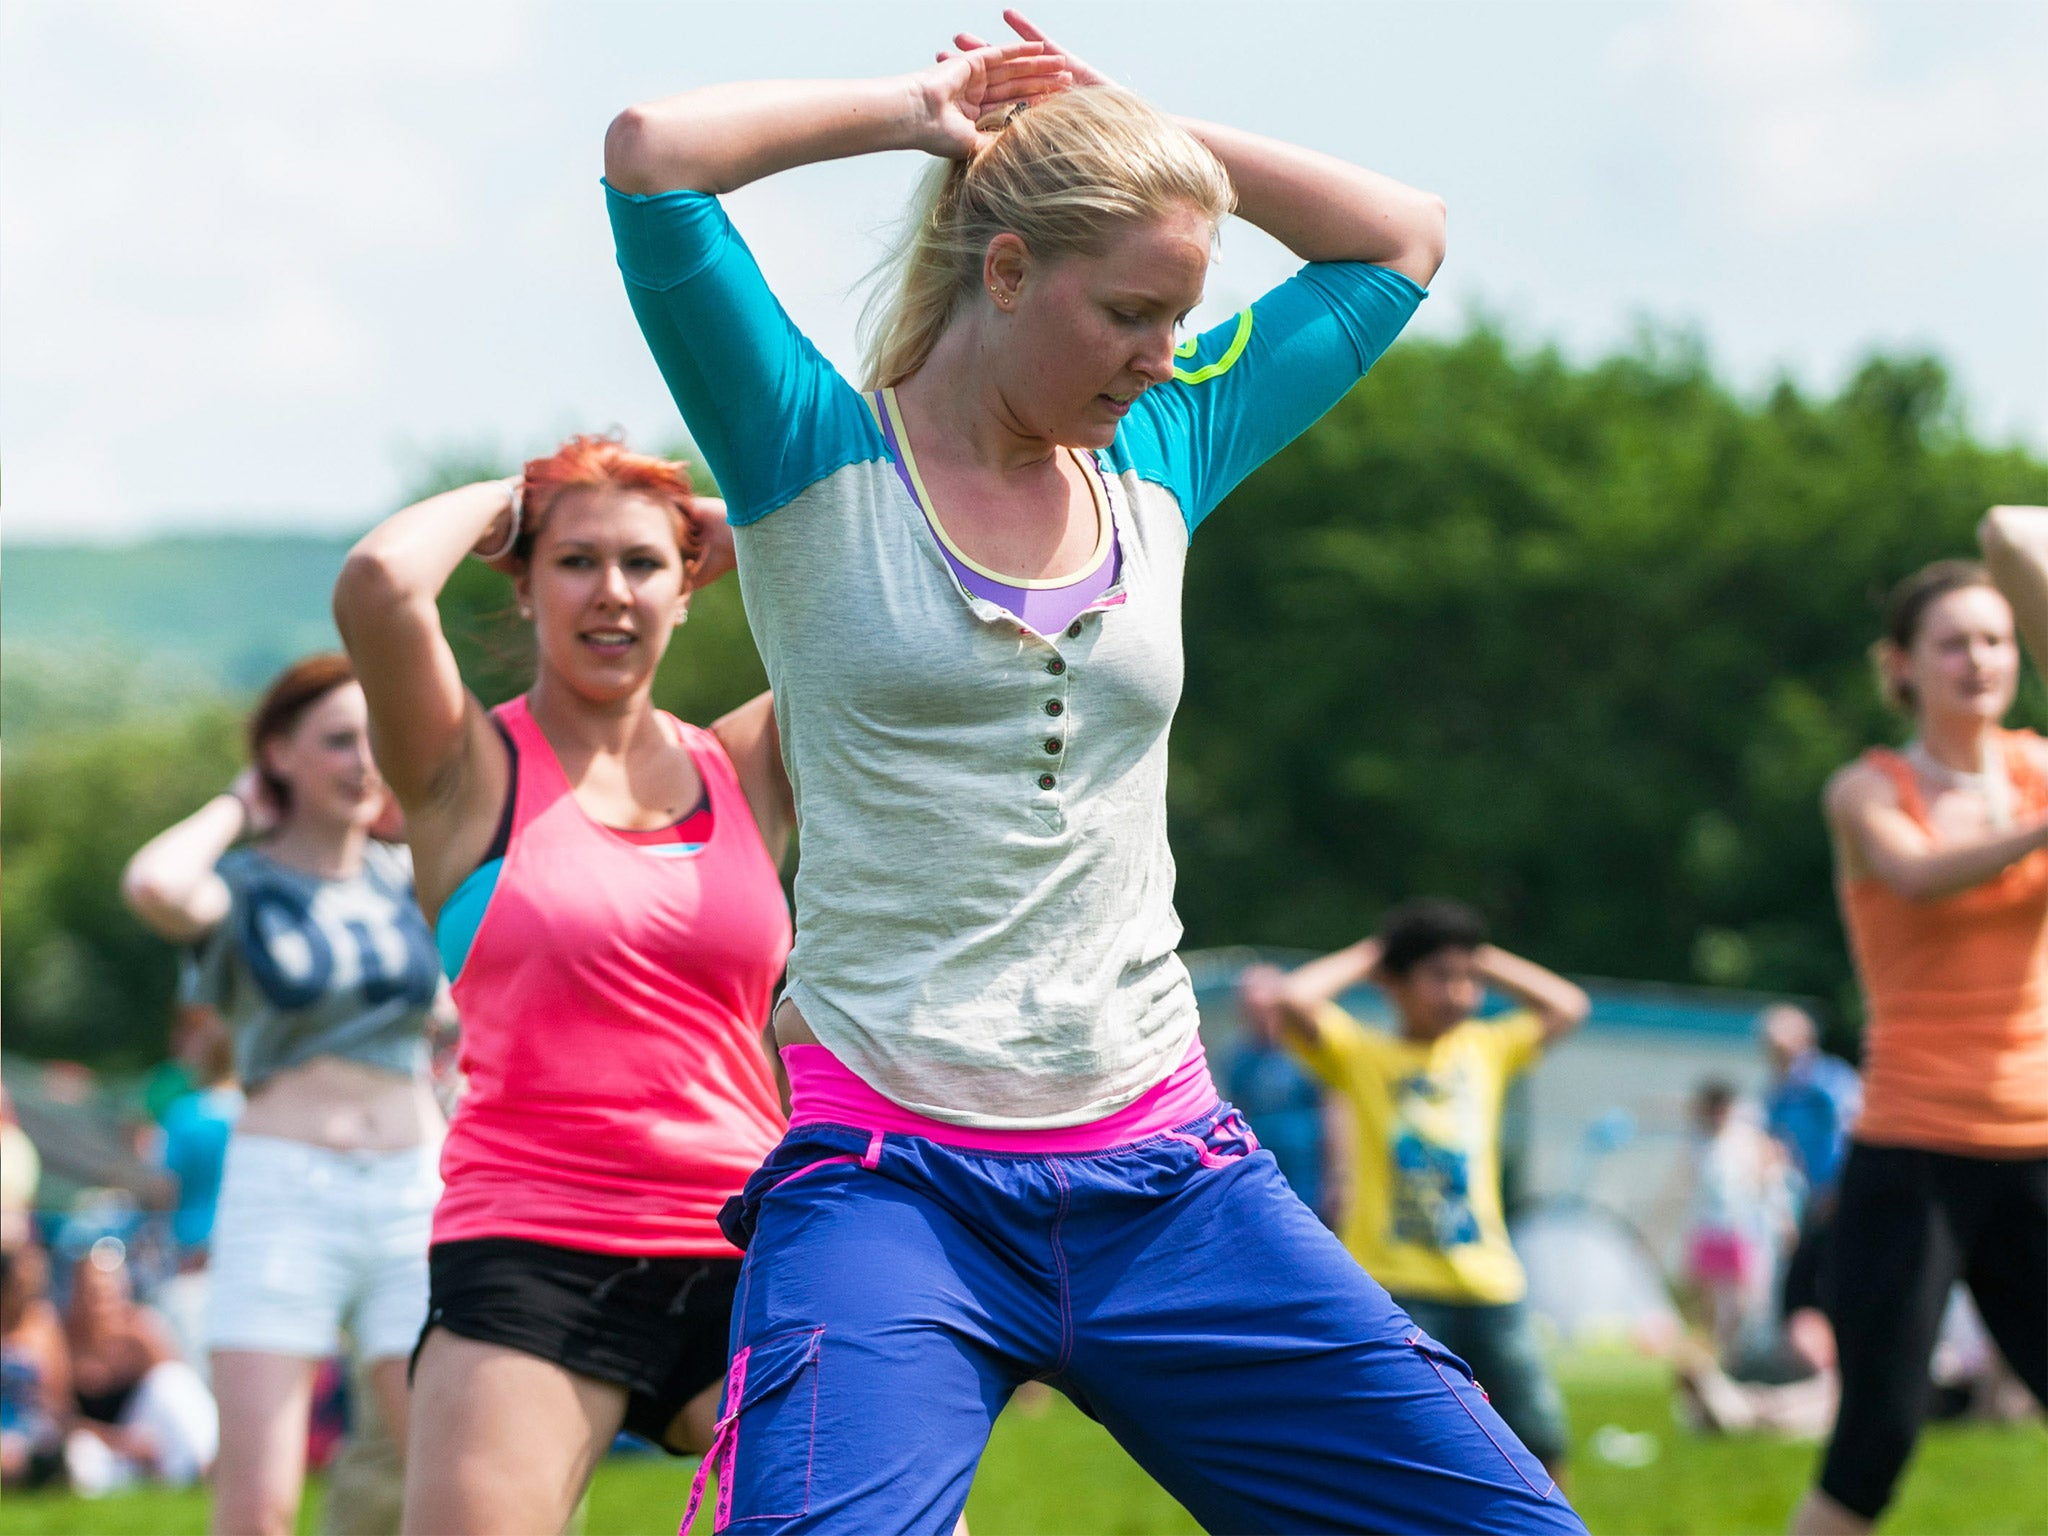 Nhs Staff To Be Encouraged Take Up Zumba Set National Example Dance Steps Diagram Basic Of Healthy Lifestyles The Independent